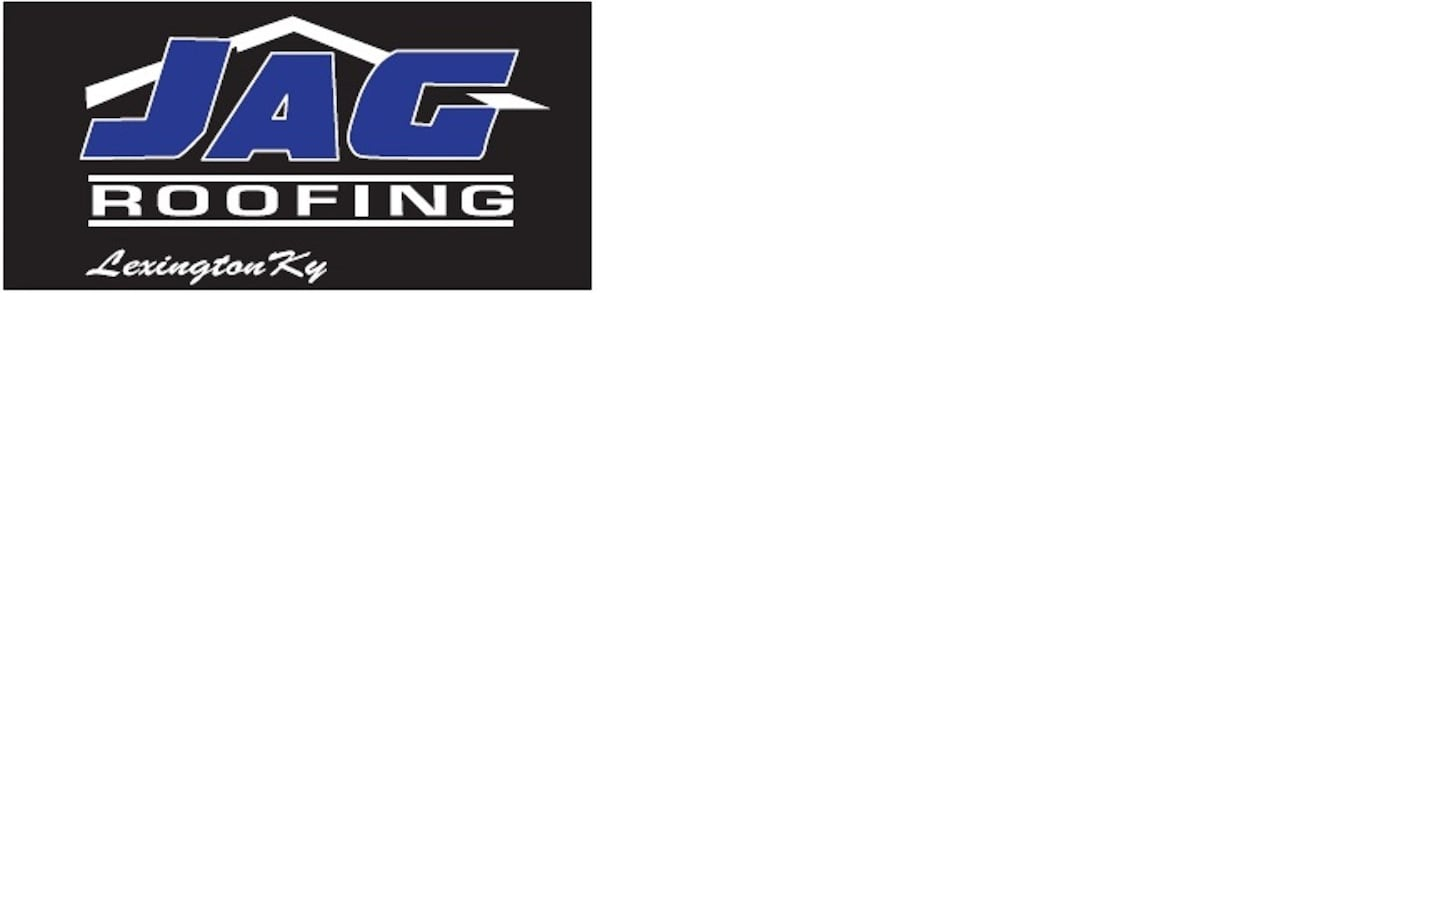 JAG Roofing & Restoration Group